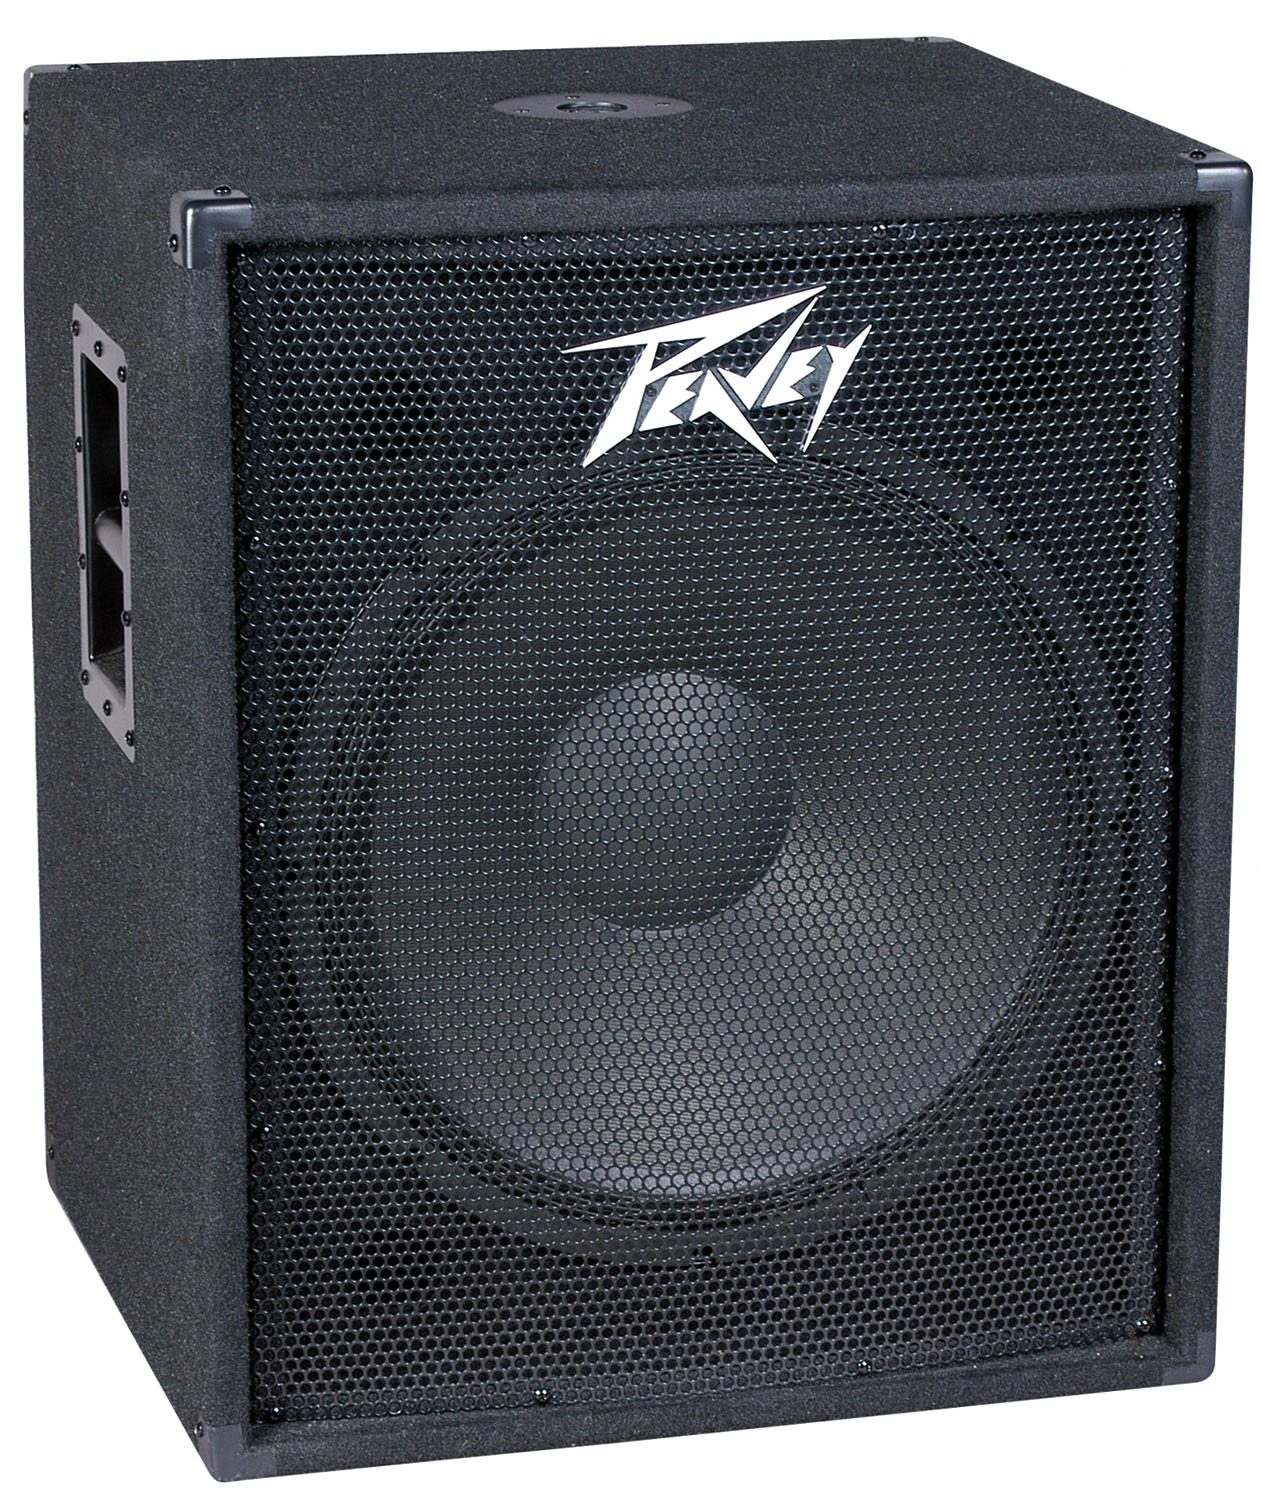 Peavey Pv 118 Vented Bass Subwoofer Enclosure 400 Watts